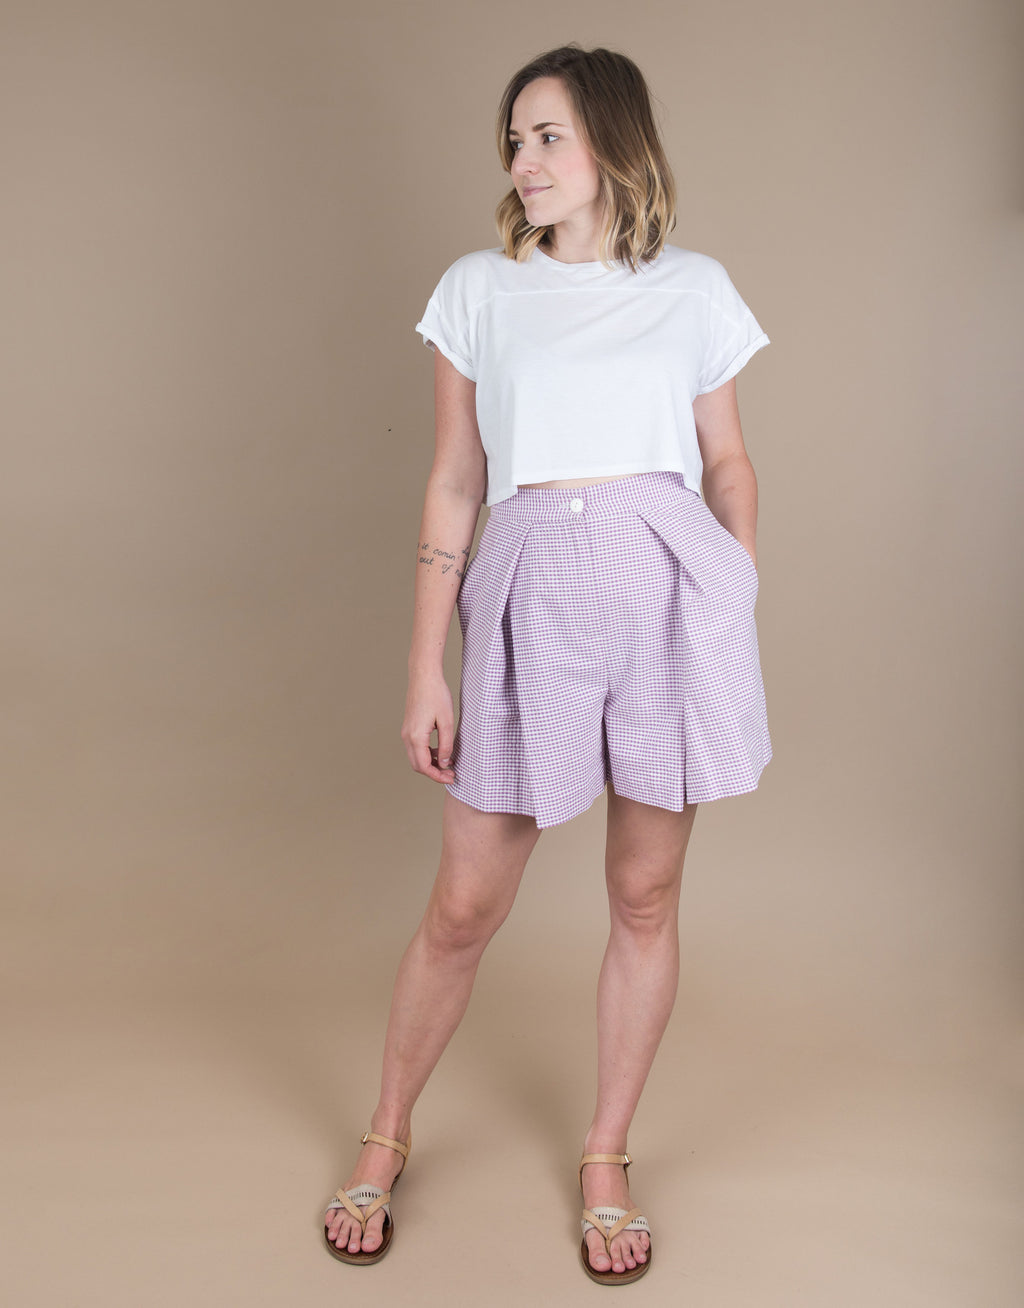 Small batch casual chic clothing sustainably handmade for every woman. Pleated Cotton Shorts.